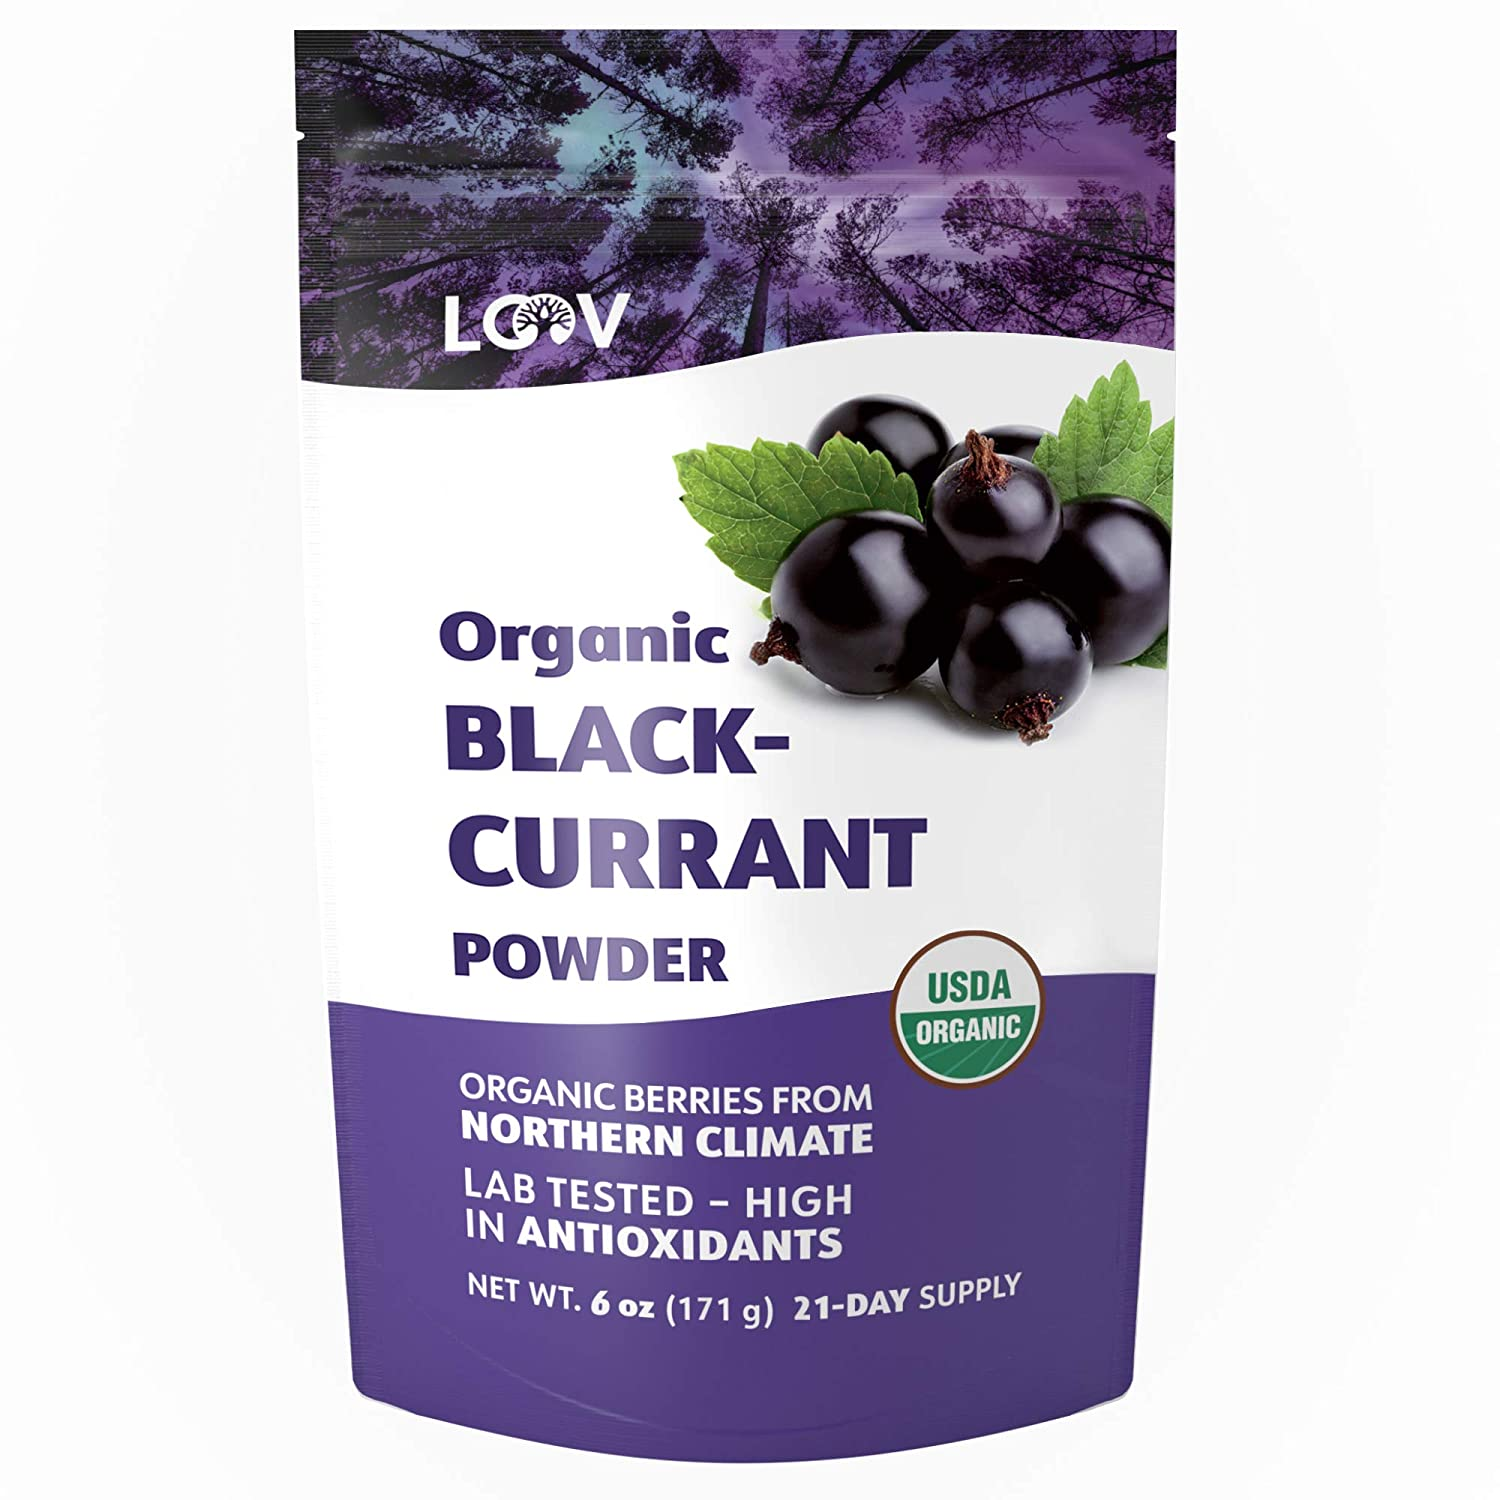 Blackcurrant Powder Organic, Rich in Anthocyanin and Vitamin C, Made from 100% Whole Blackcurrants, Freeze-Dried, 6 oz, Raw, Grown in Northern Europe, 21-Day Supply, USDA/EU Certified Organic